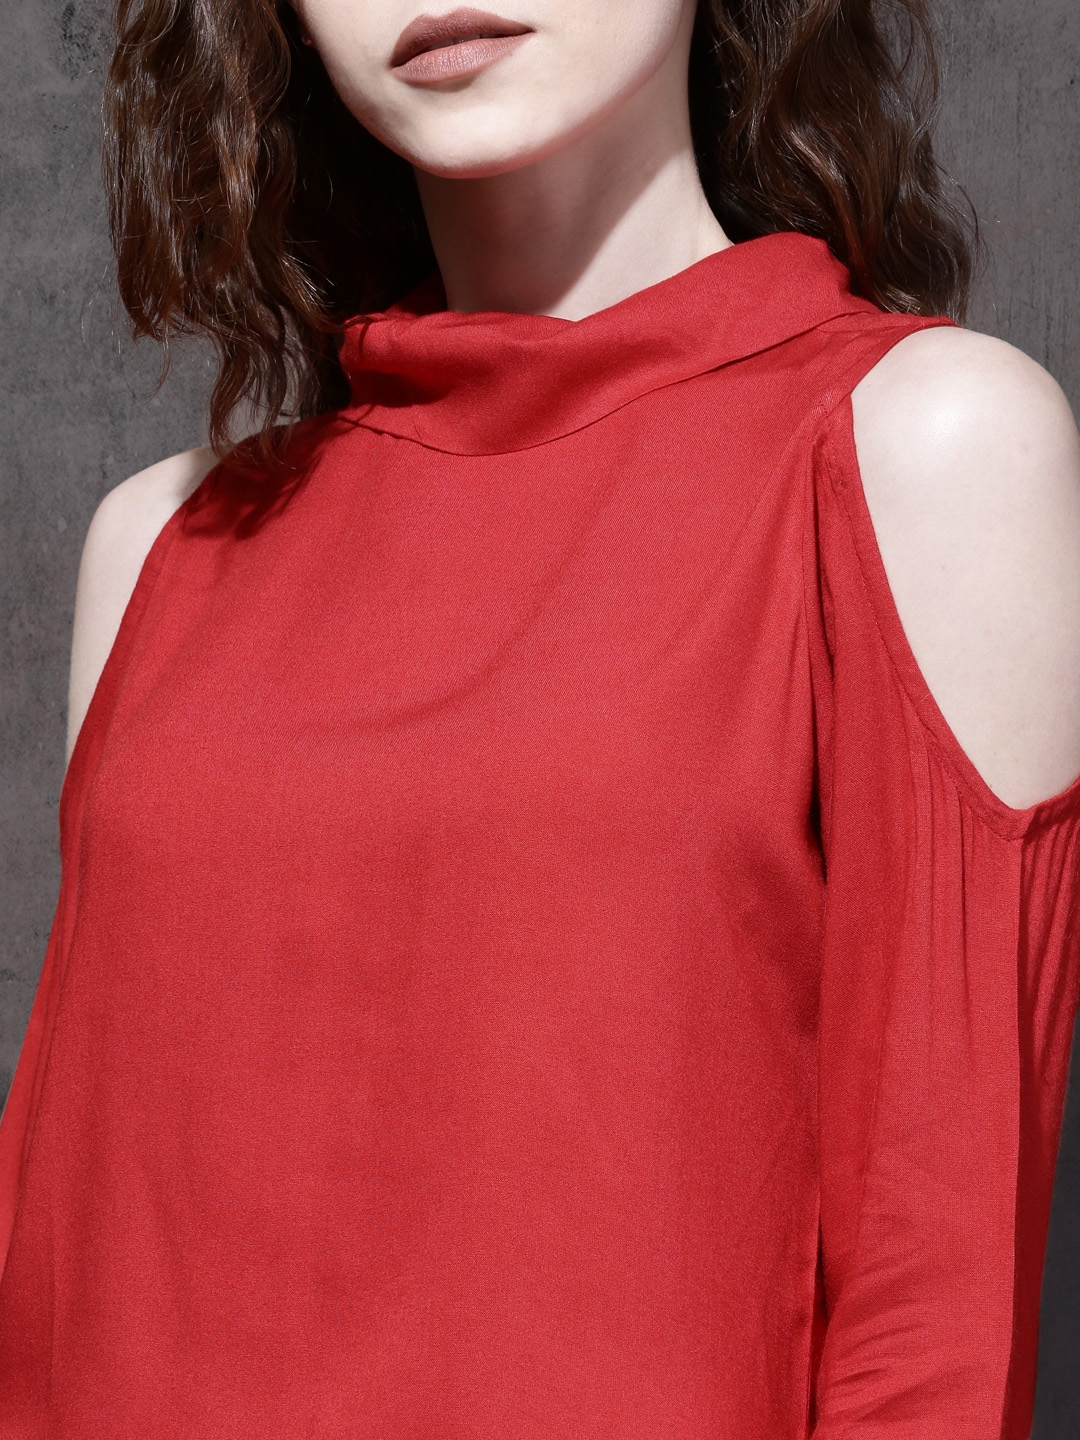 02e3f41cce80f3 Buy Roadster Women Red Solid Cold Shoulder Top - Tops for Women ...